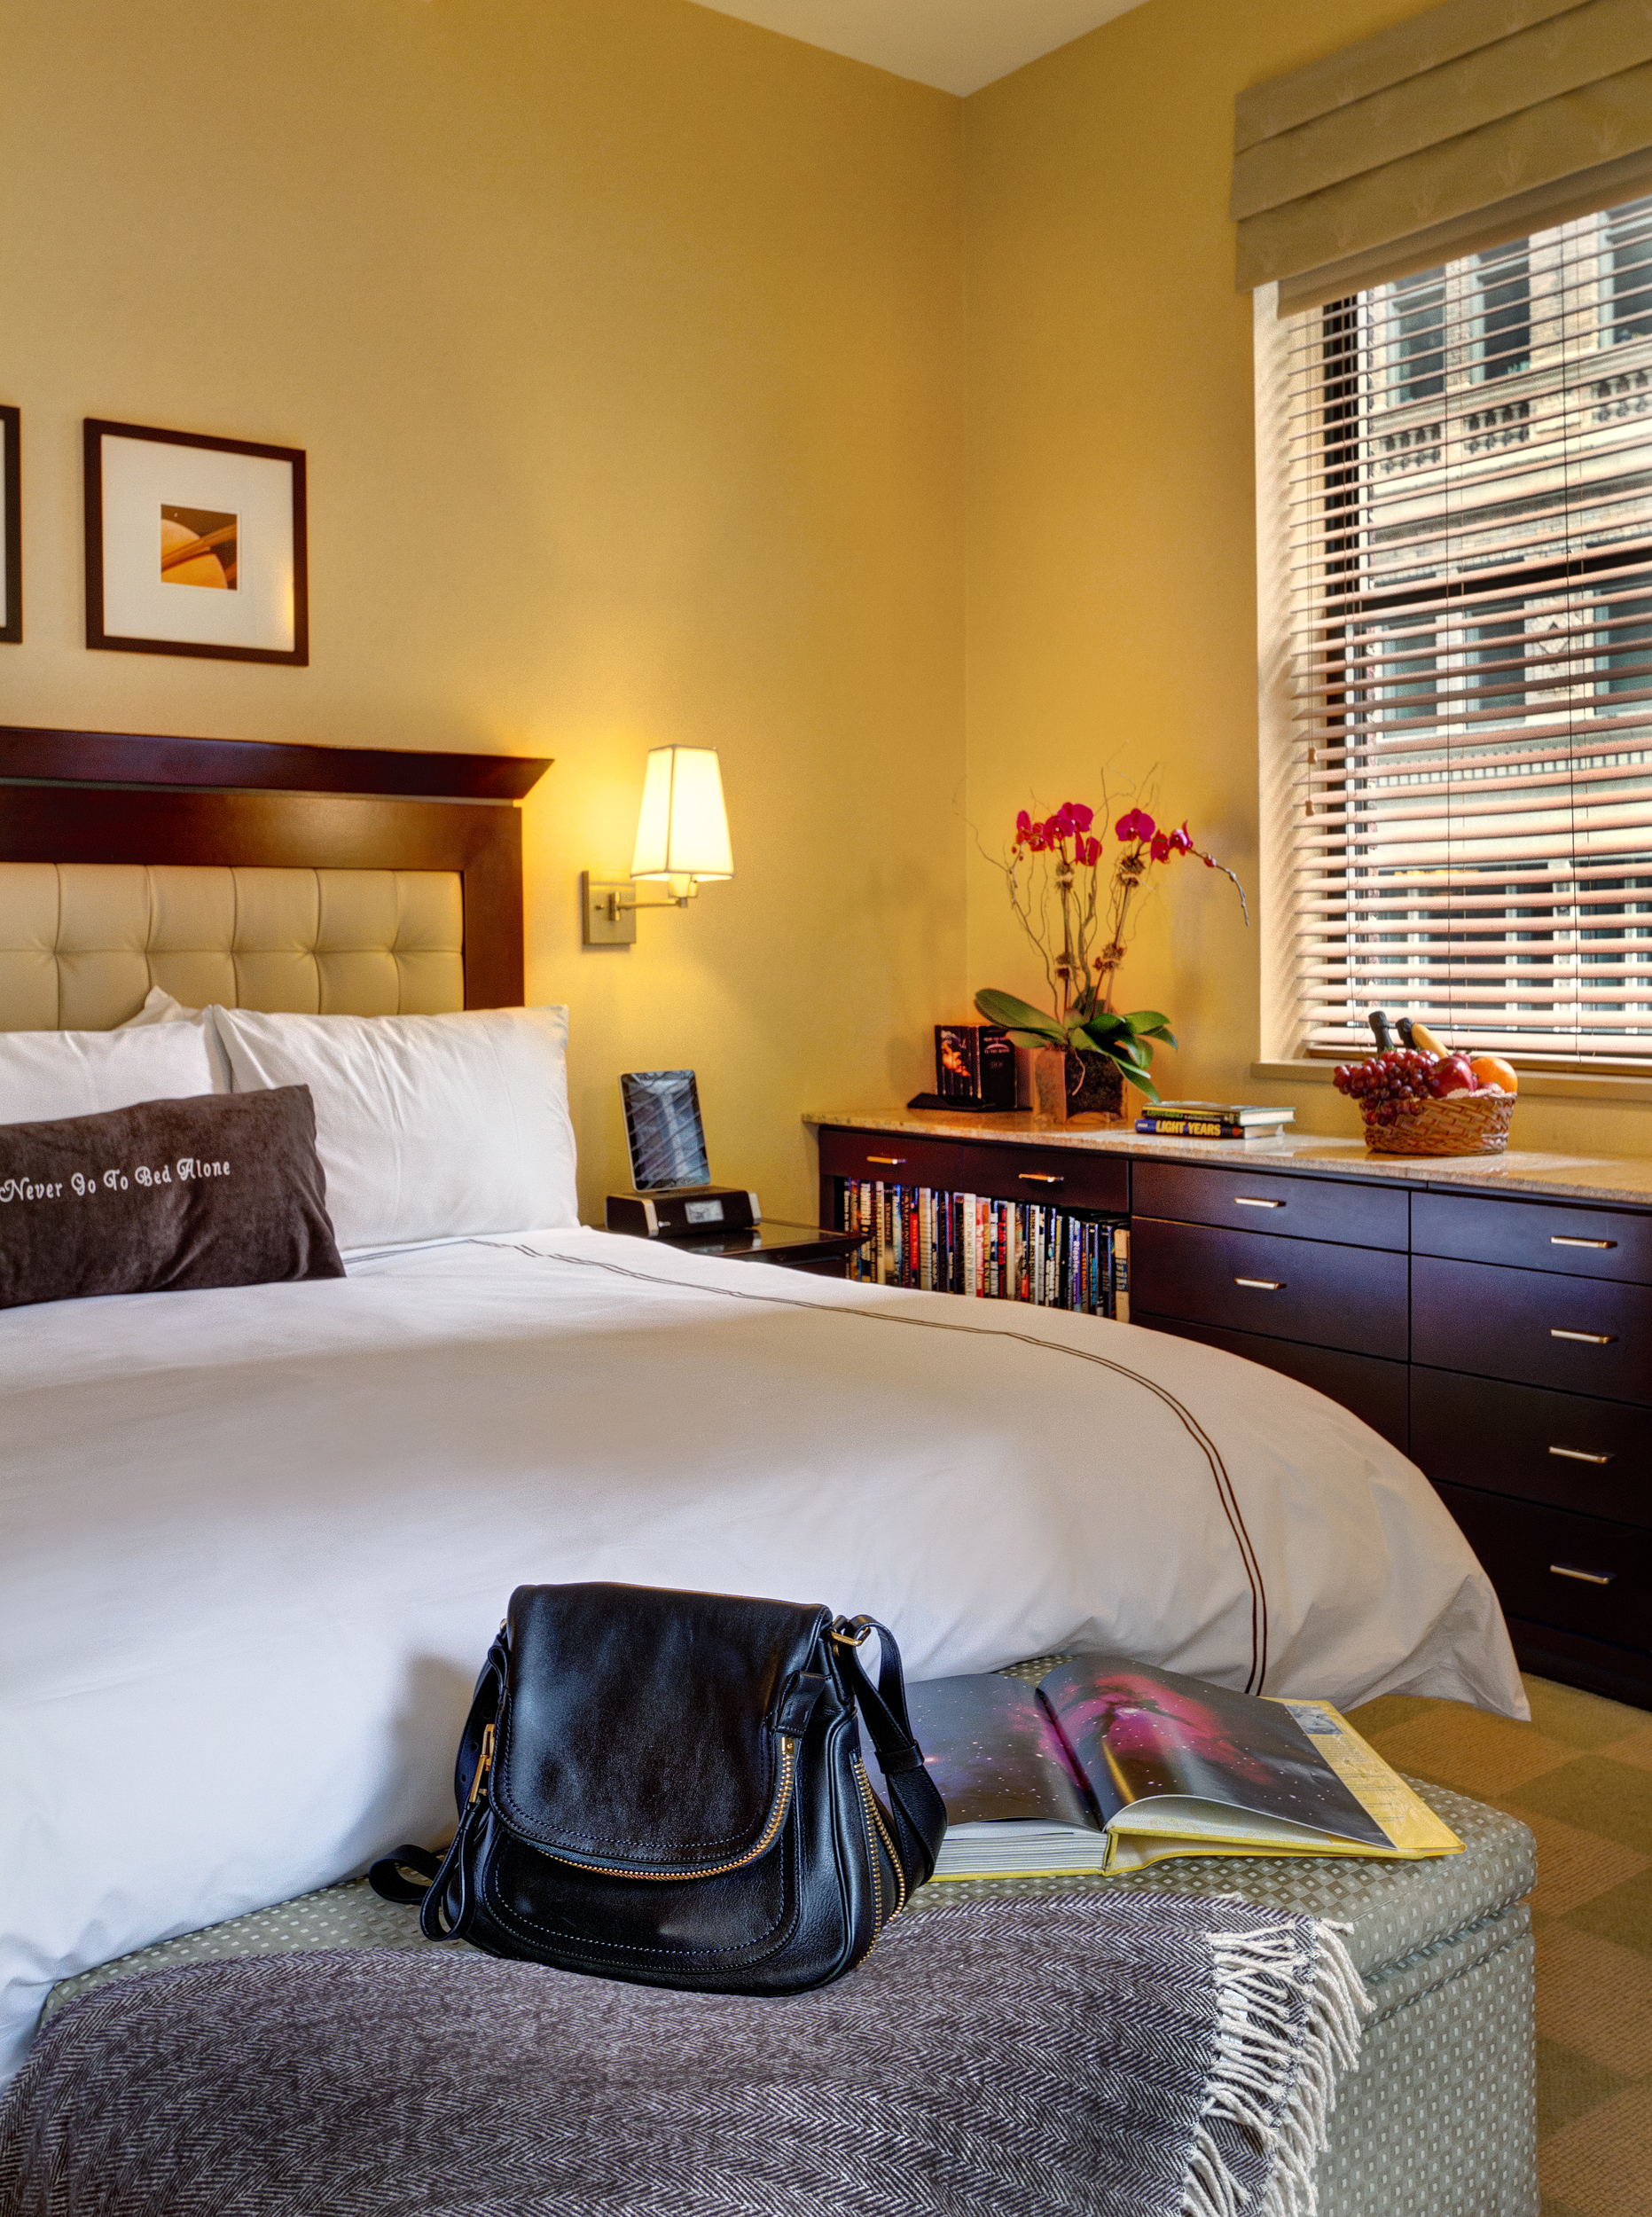 4 NYC Theme Hotels Worth Checking Out